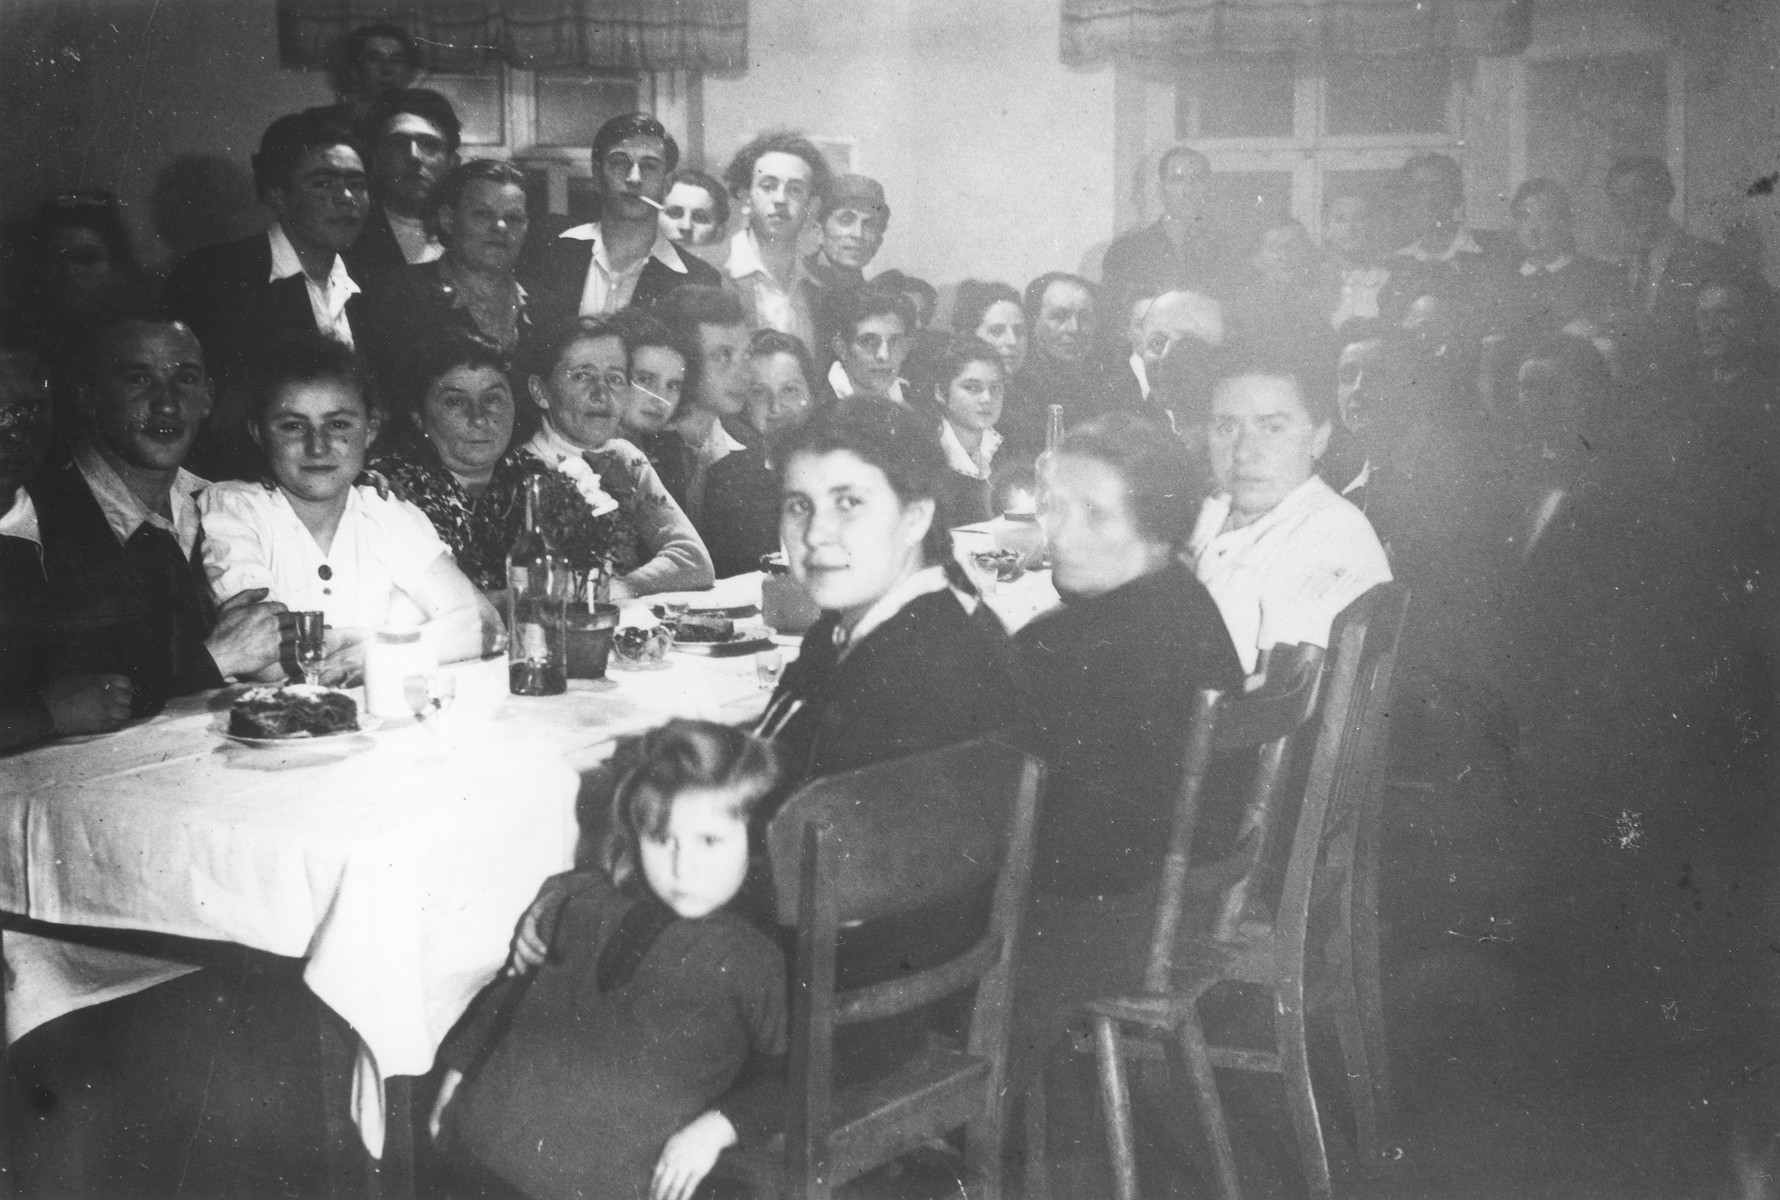 Jewish DPs gather for a Sabbath meal at the Schauenstein displaced persons camp for children.